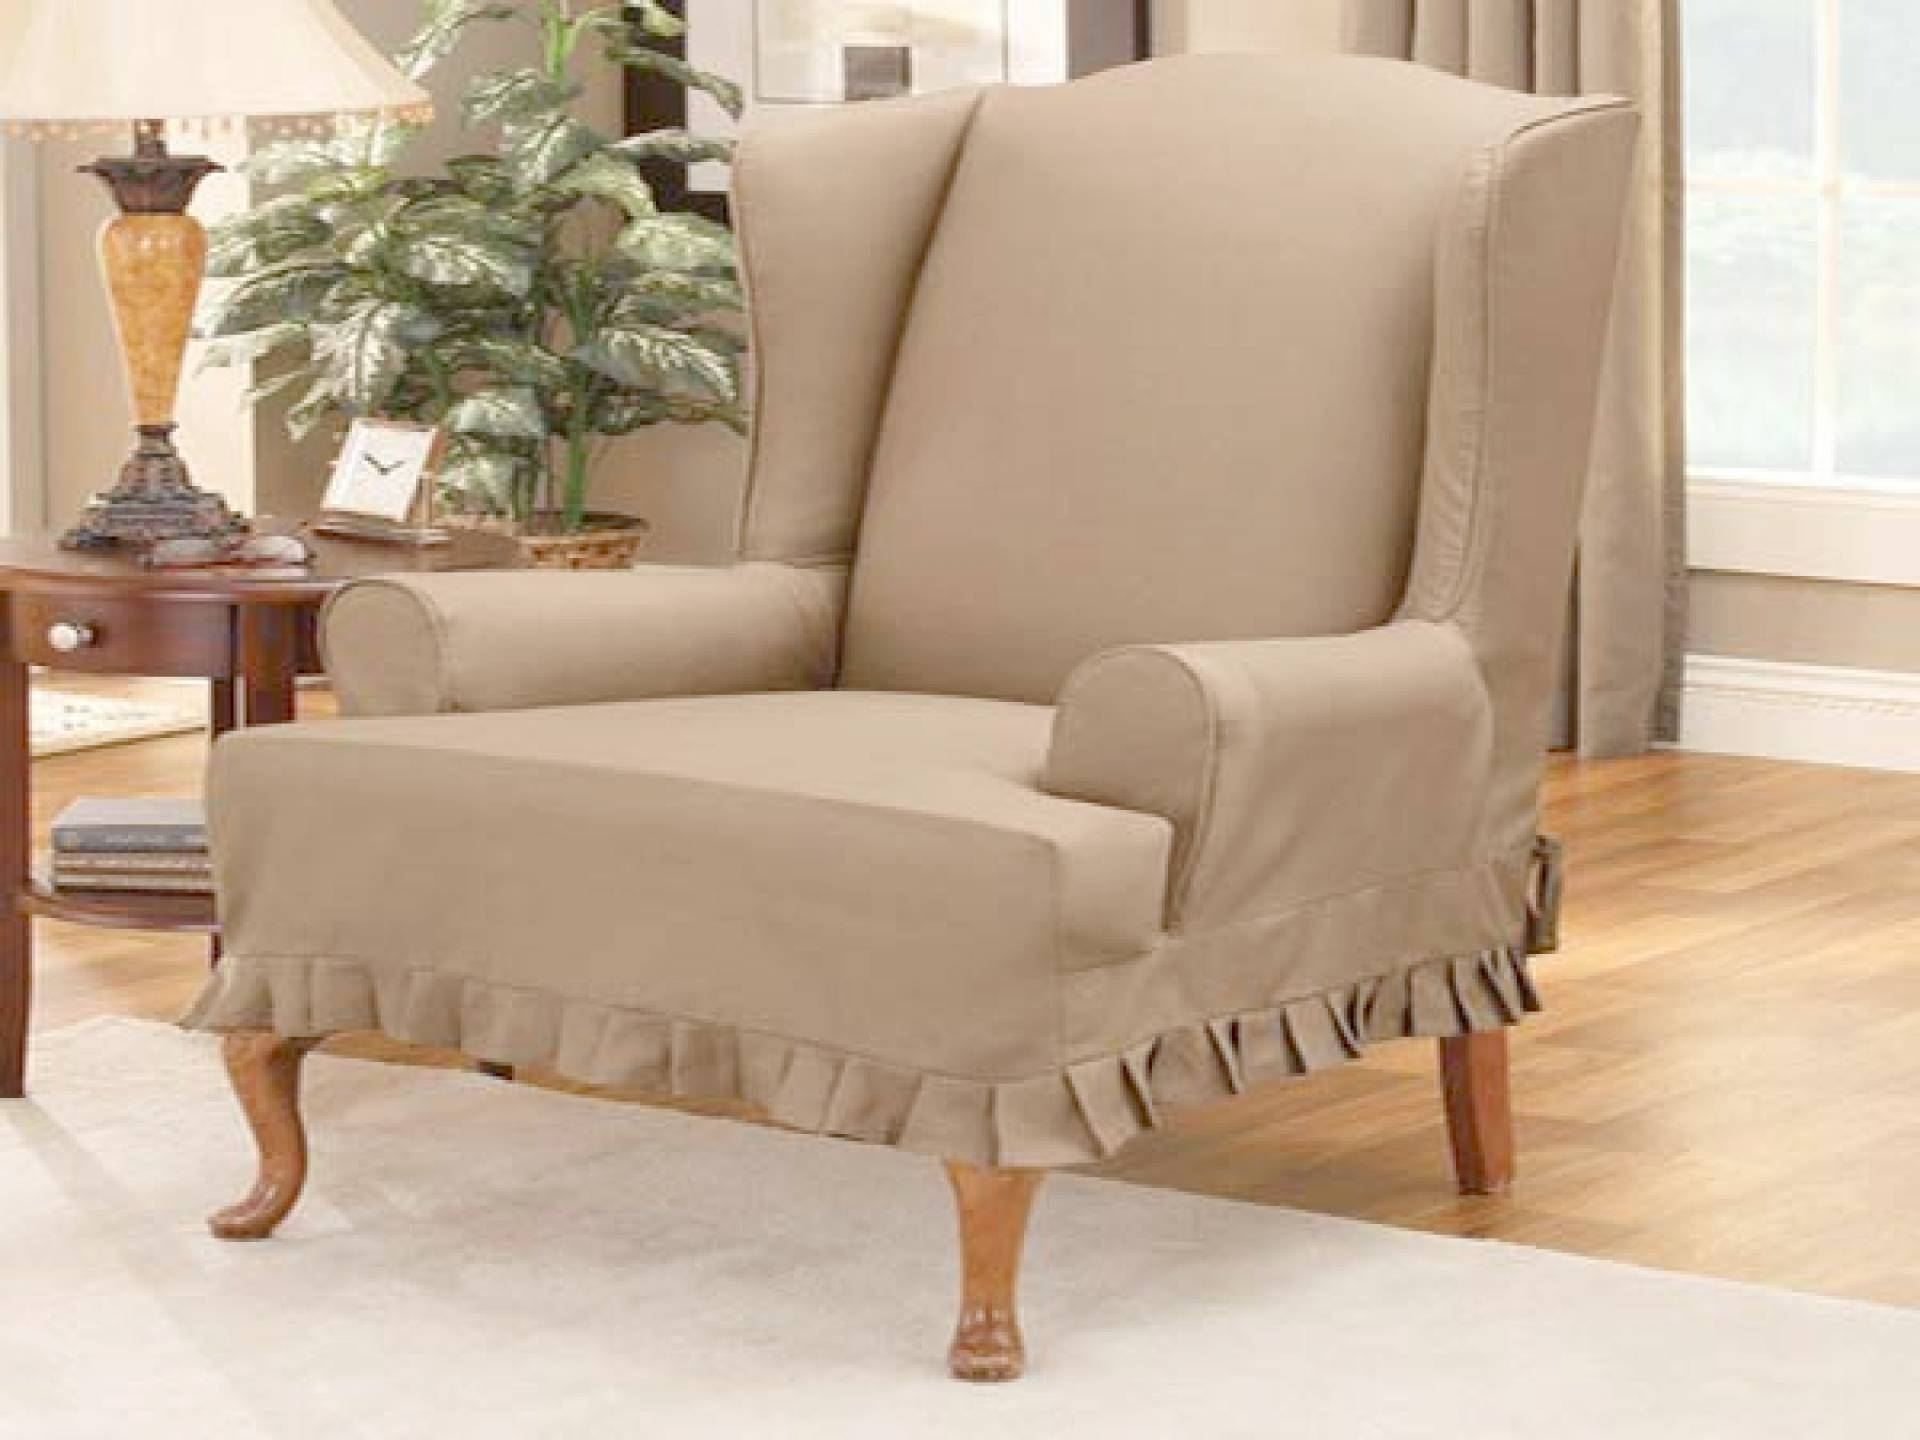 Image of: Wing Chair Recliner Design